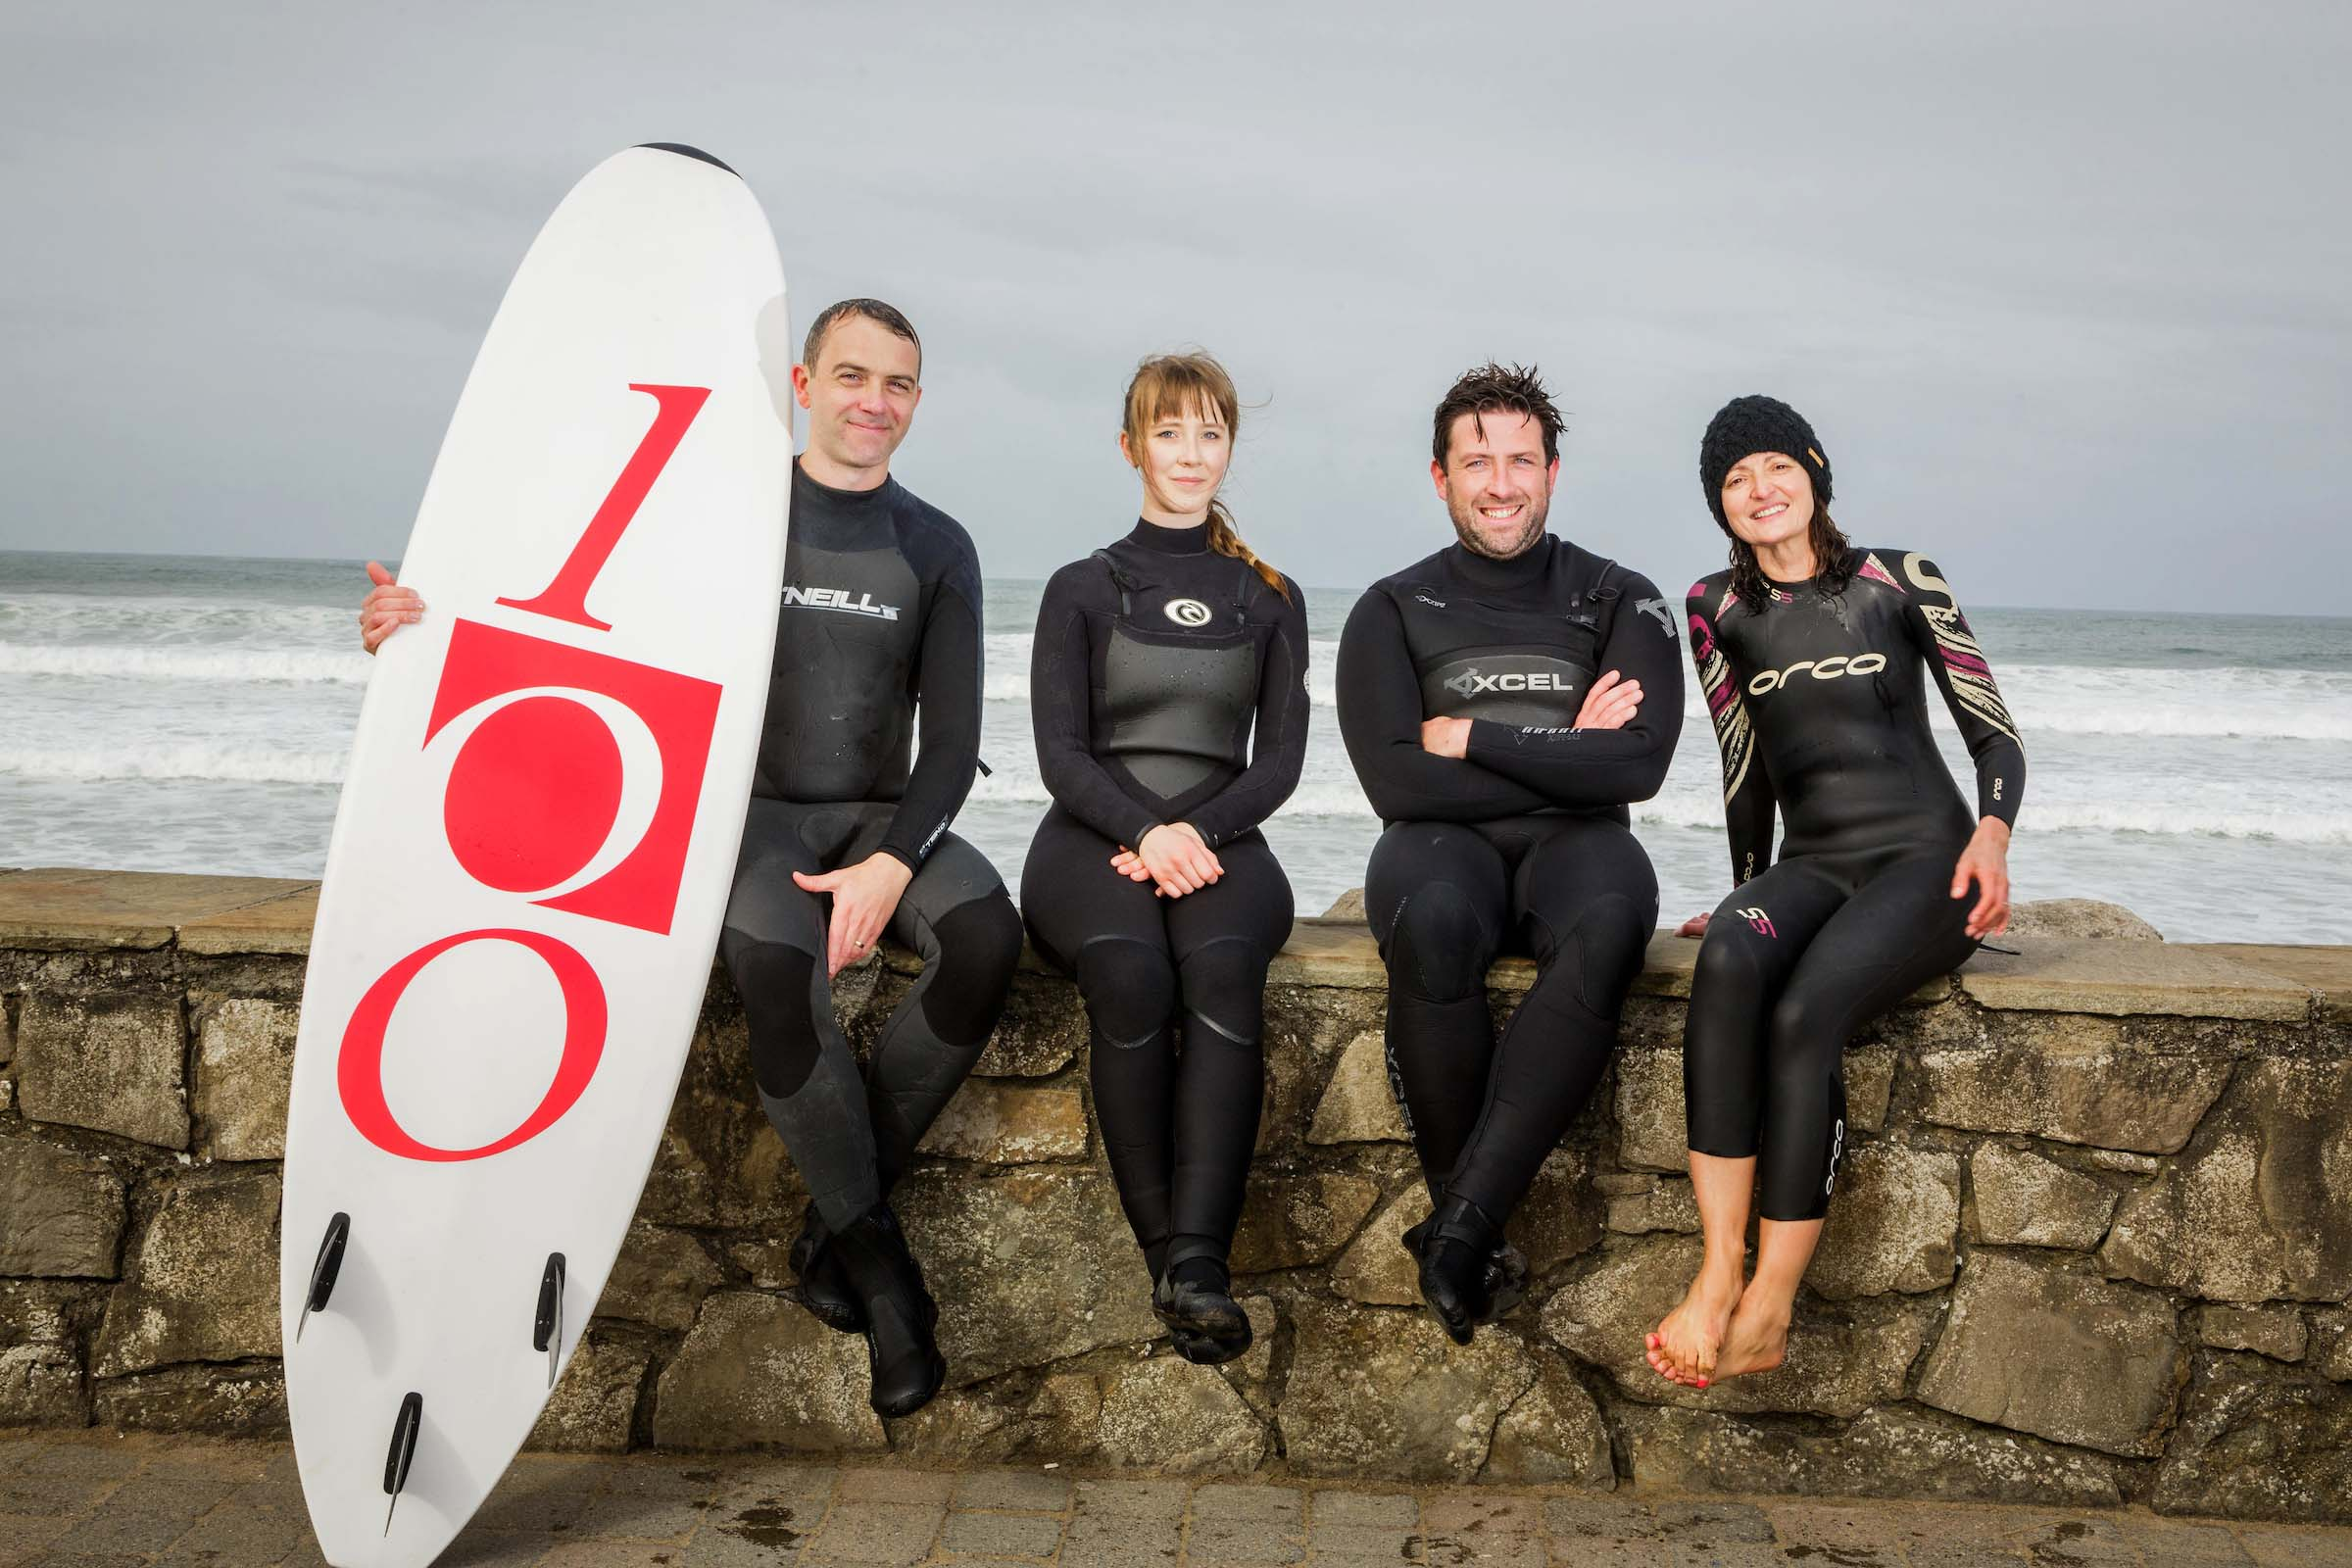 100 Research and Development Roles Announced for Sligo at Overstock